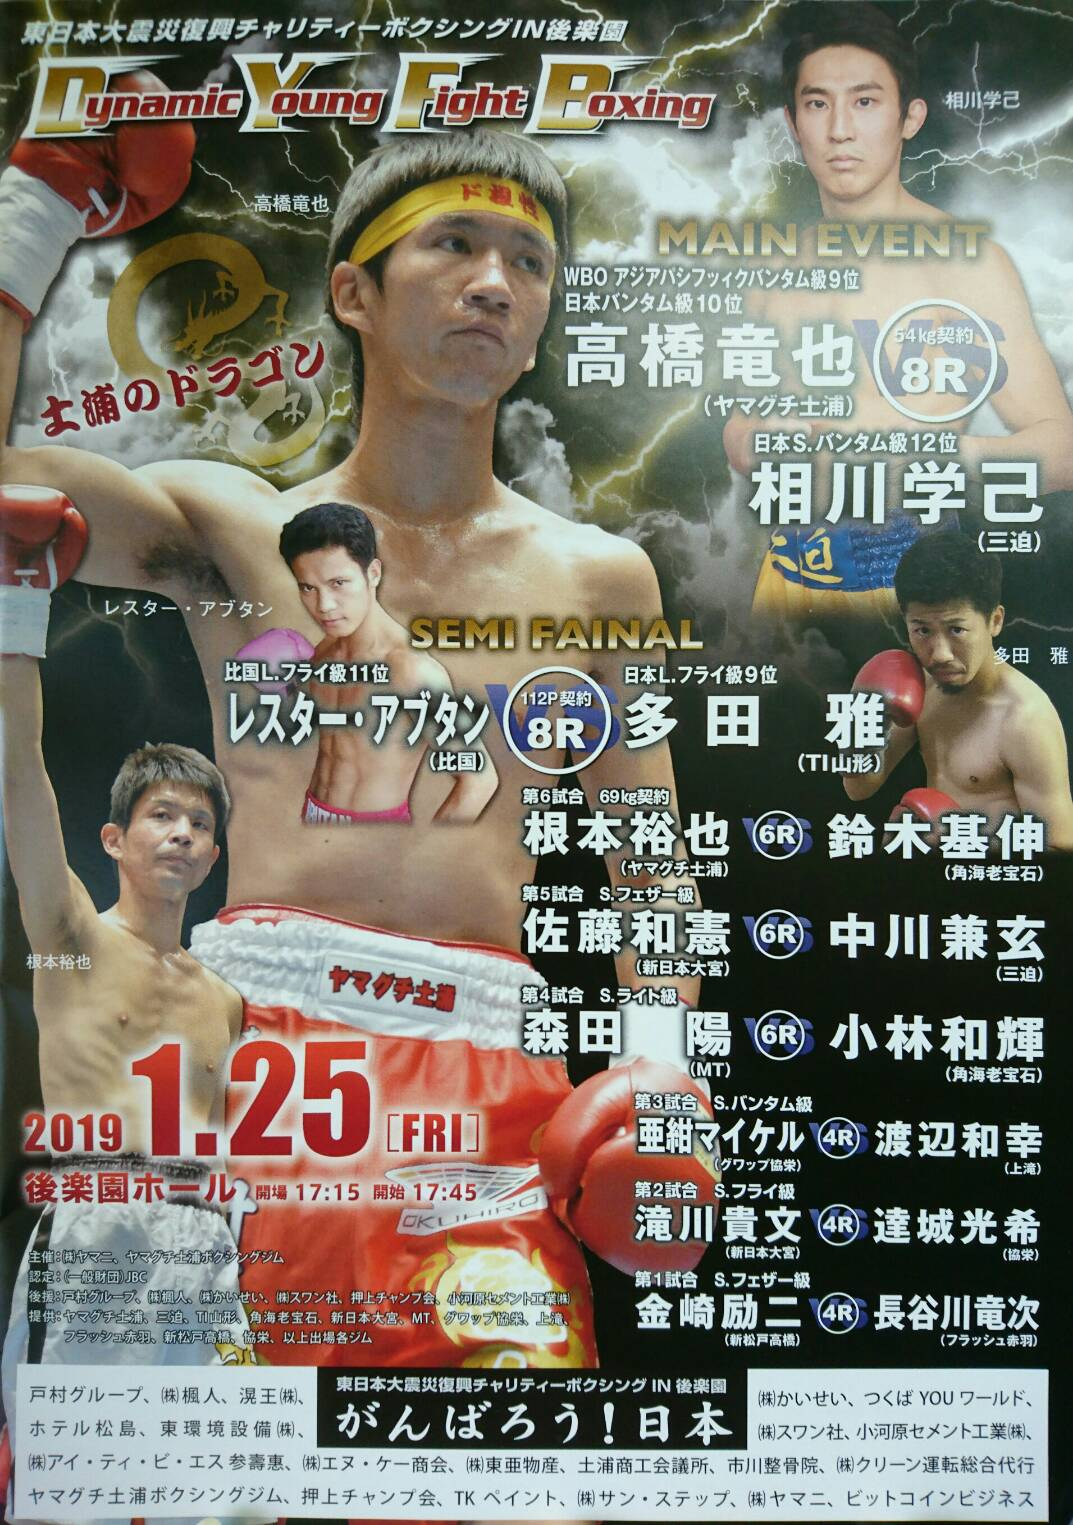 Dynamic-Young-Fight-Boxing-in-2019-01-25